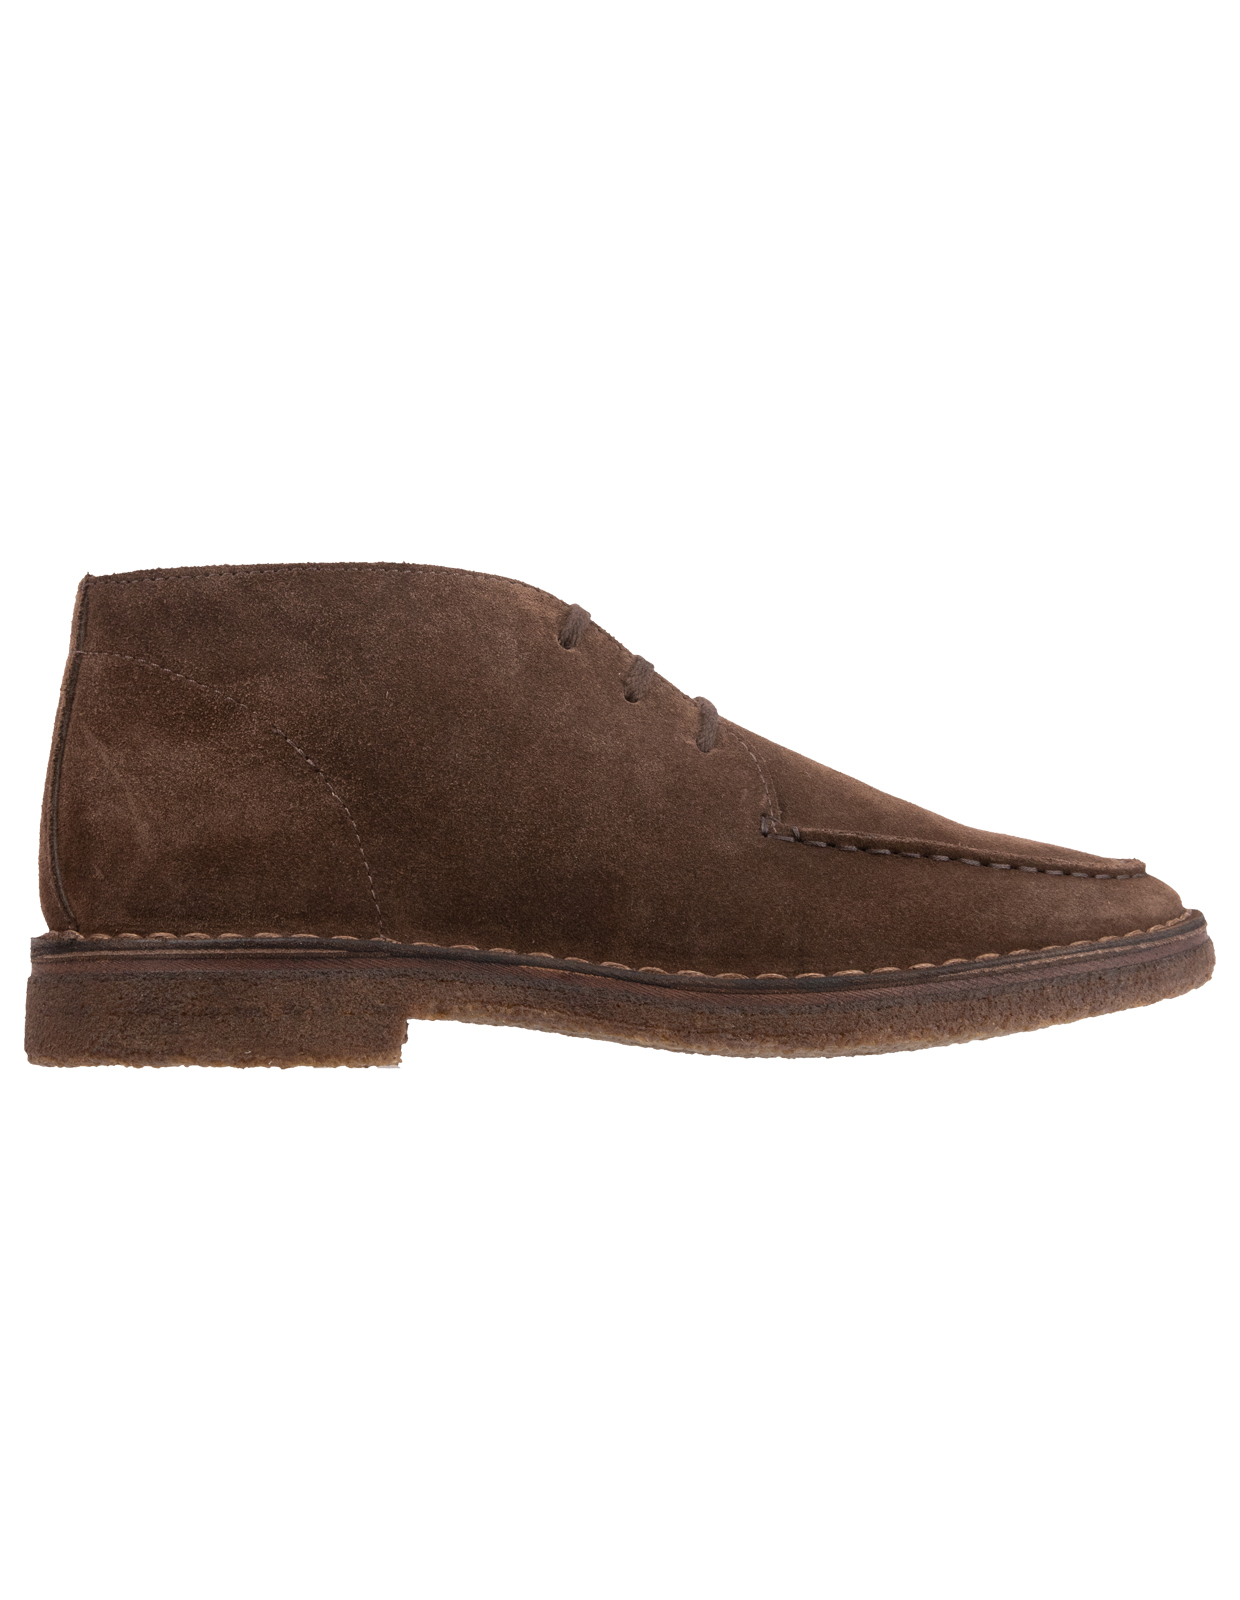 Crosby Chukka Boot Suede Rubber Sole DarkBrown